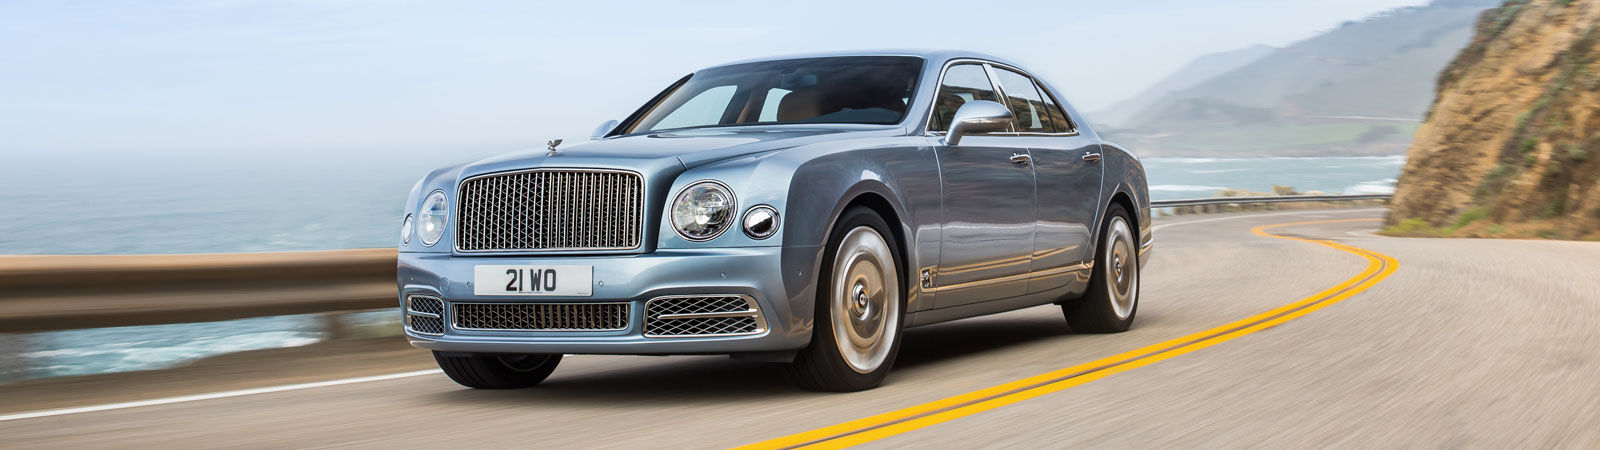 new bentley mulsanne price specs release date carwow. Black Bedroom Furniture Sets. Home Design Ideas